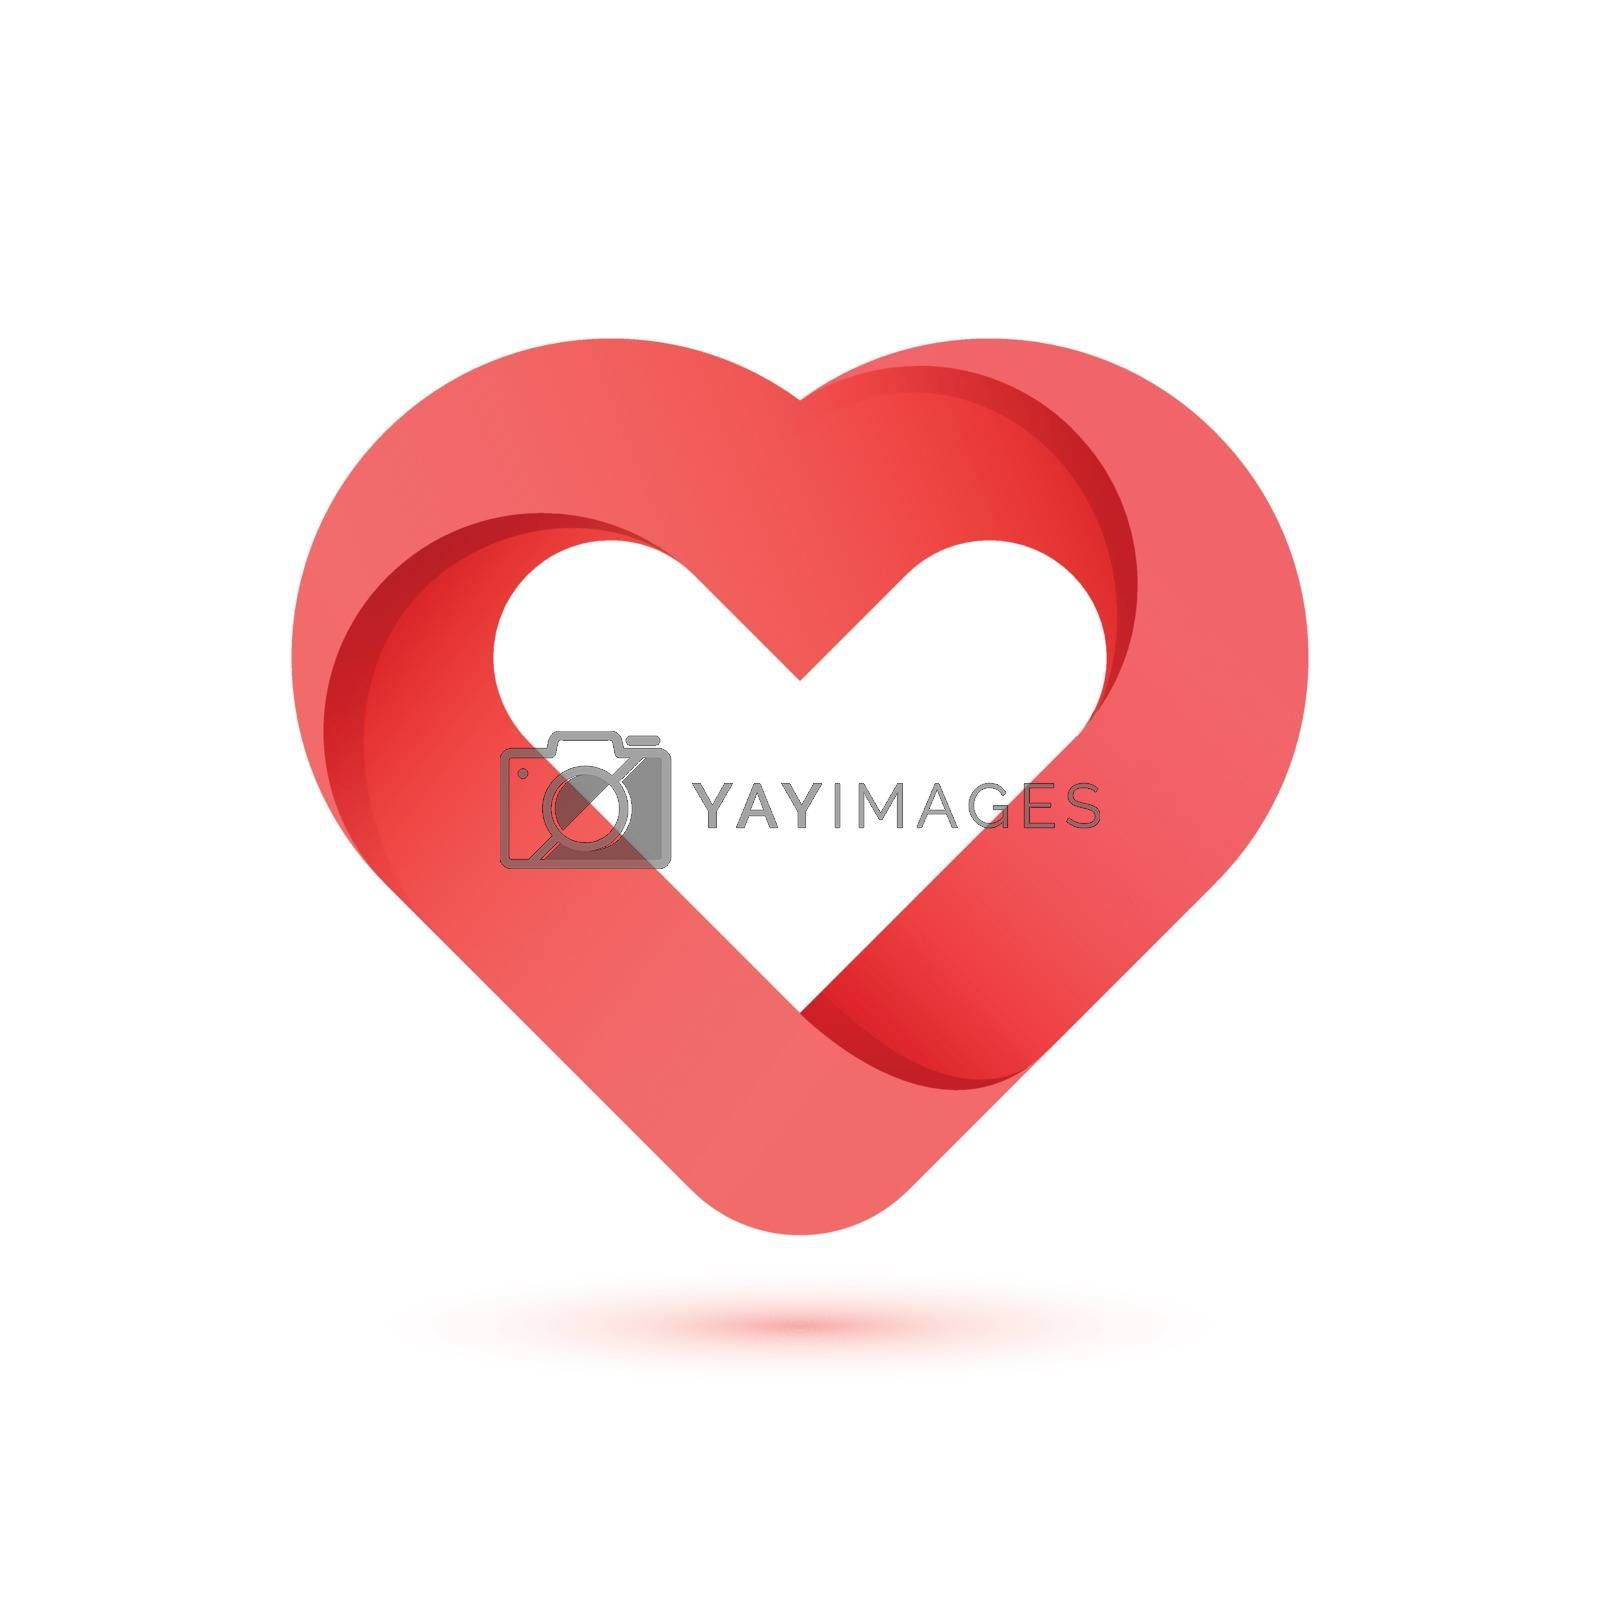 Creative heart shape illustration on white background for valentine's day.